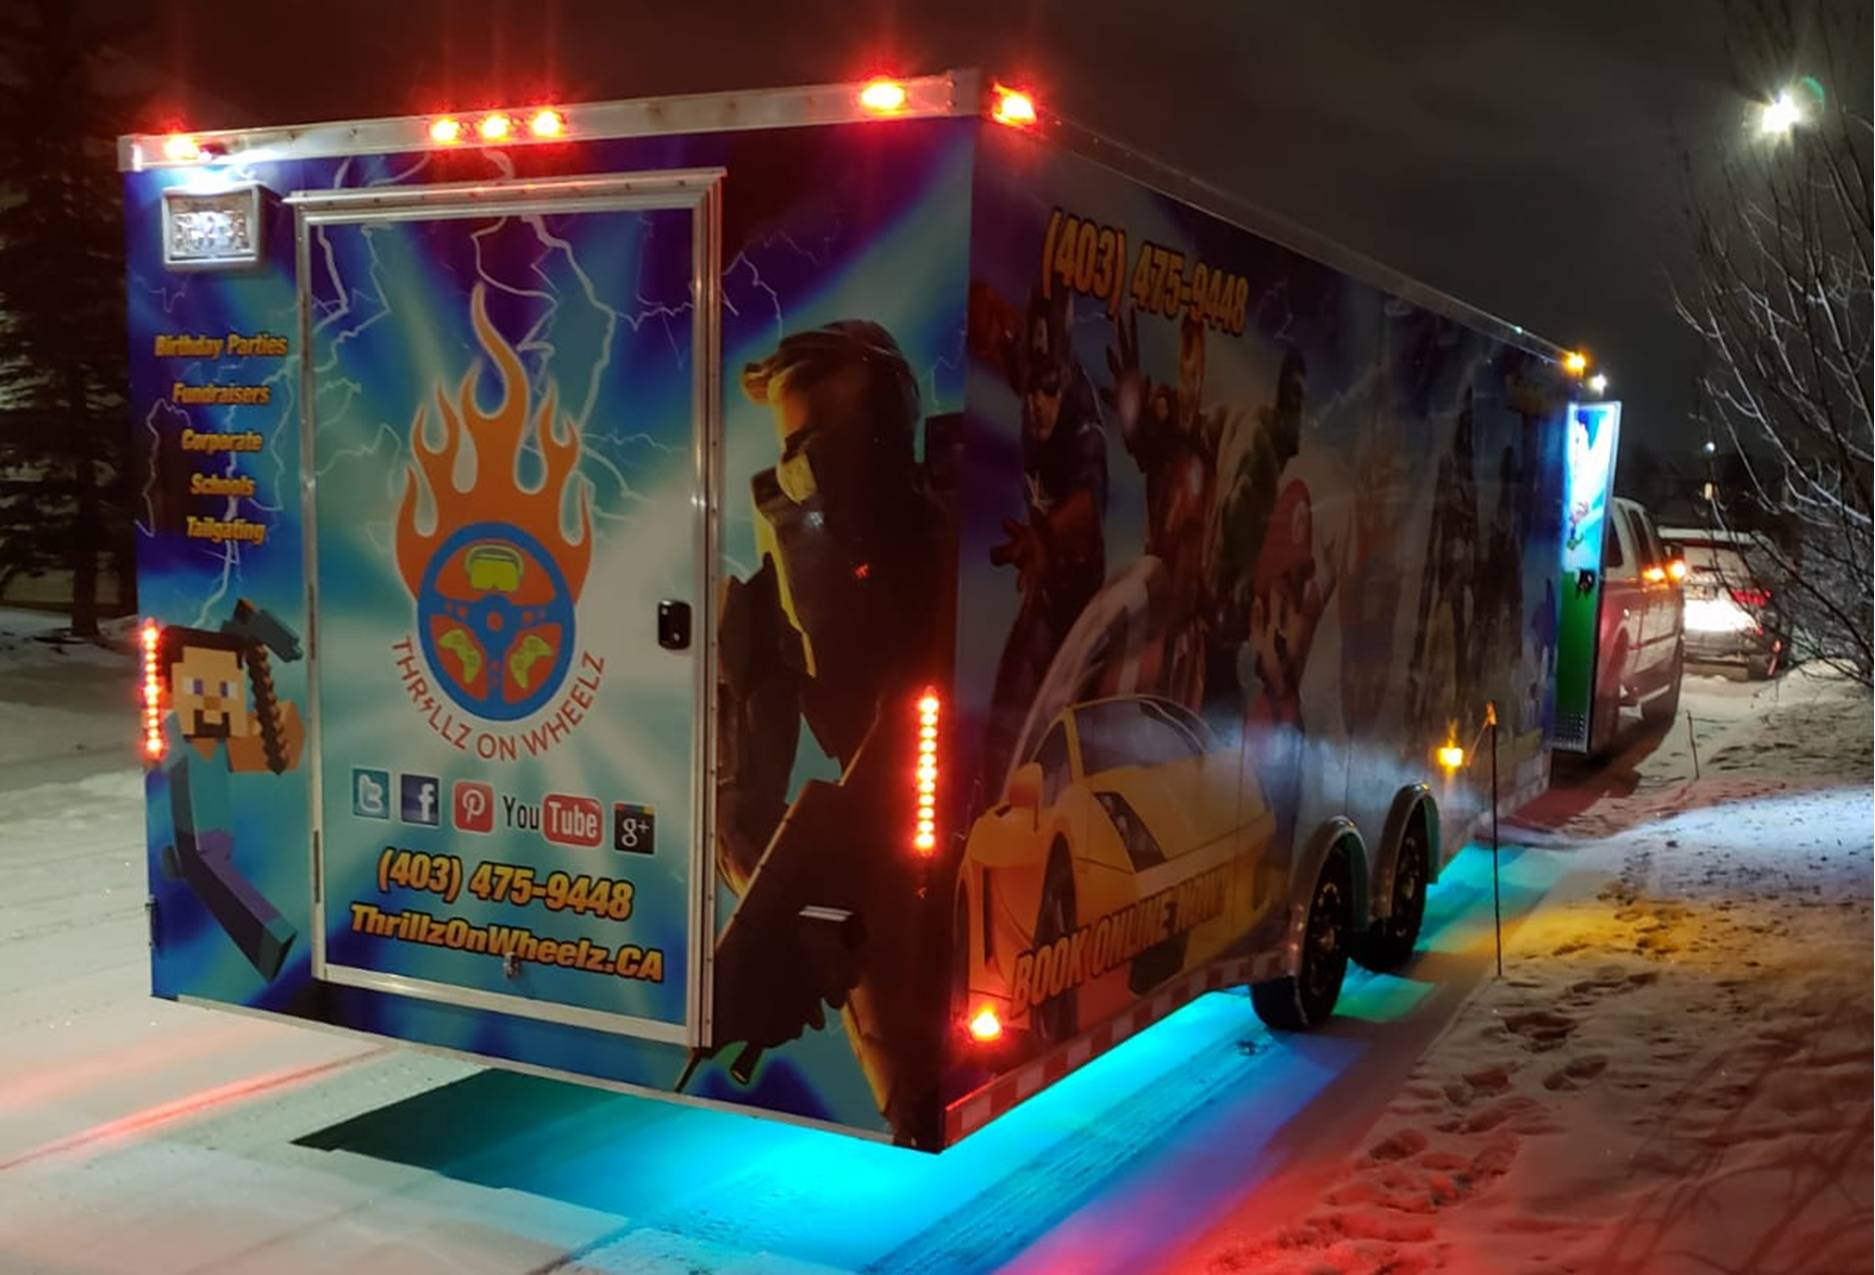 calgary-alberta-video-game-party-truck-and-trailer